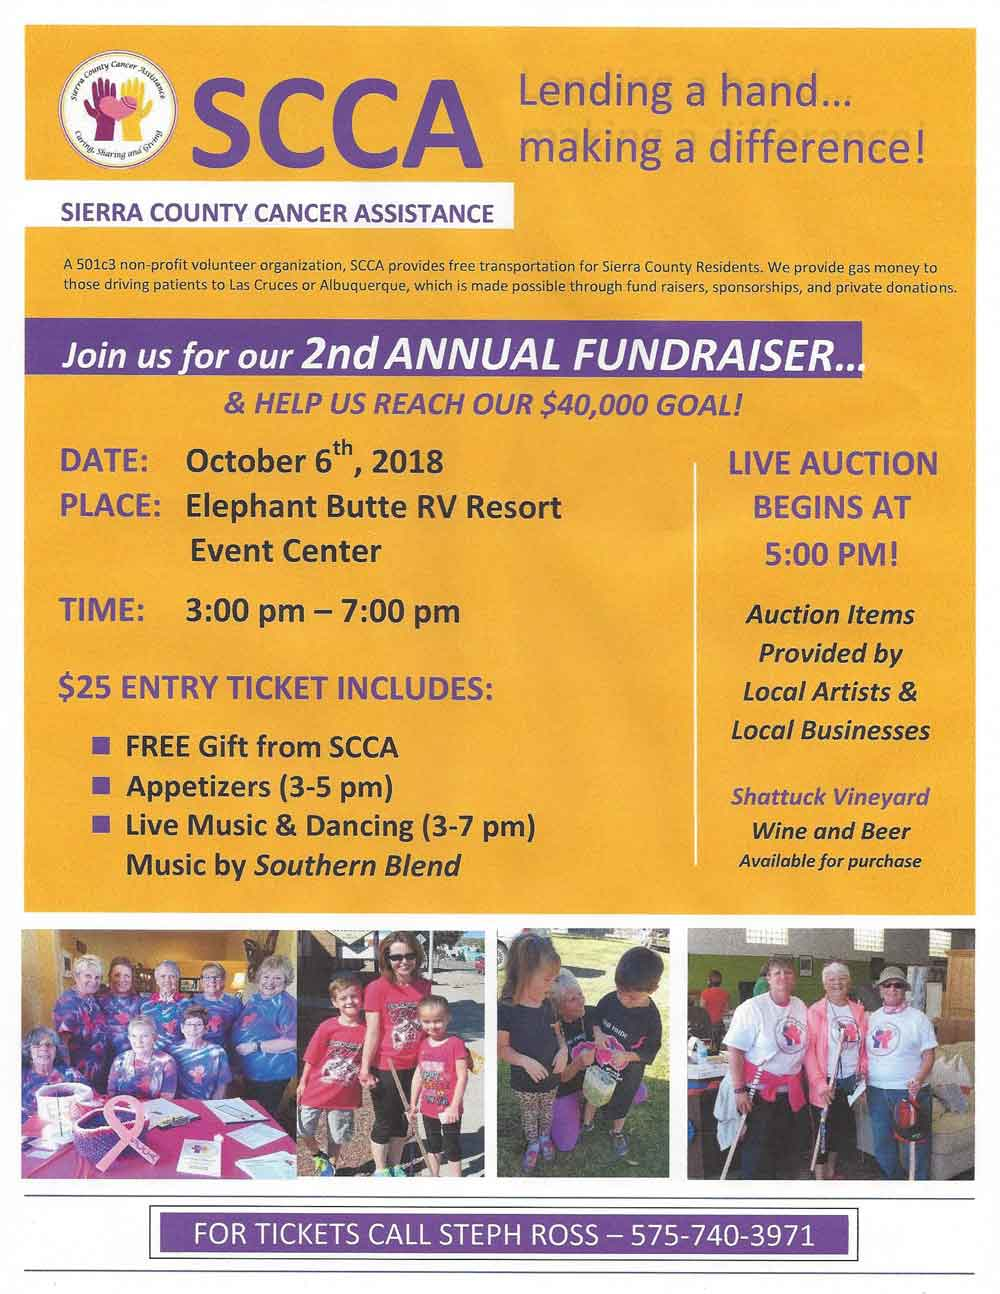 October 2018 fundraiser for Sierra County Cancer Assistance